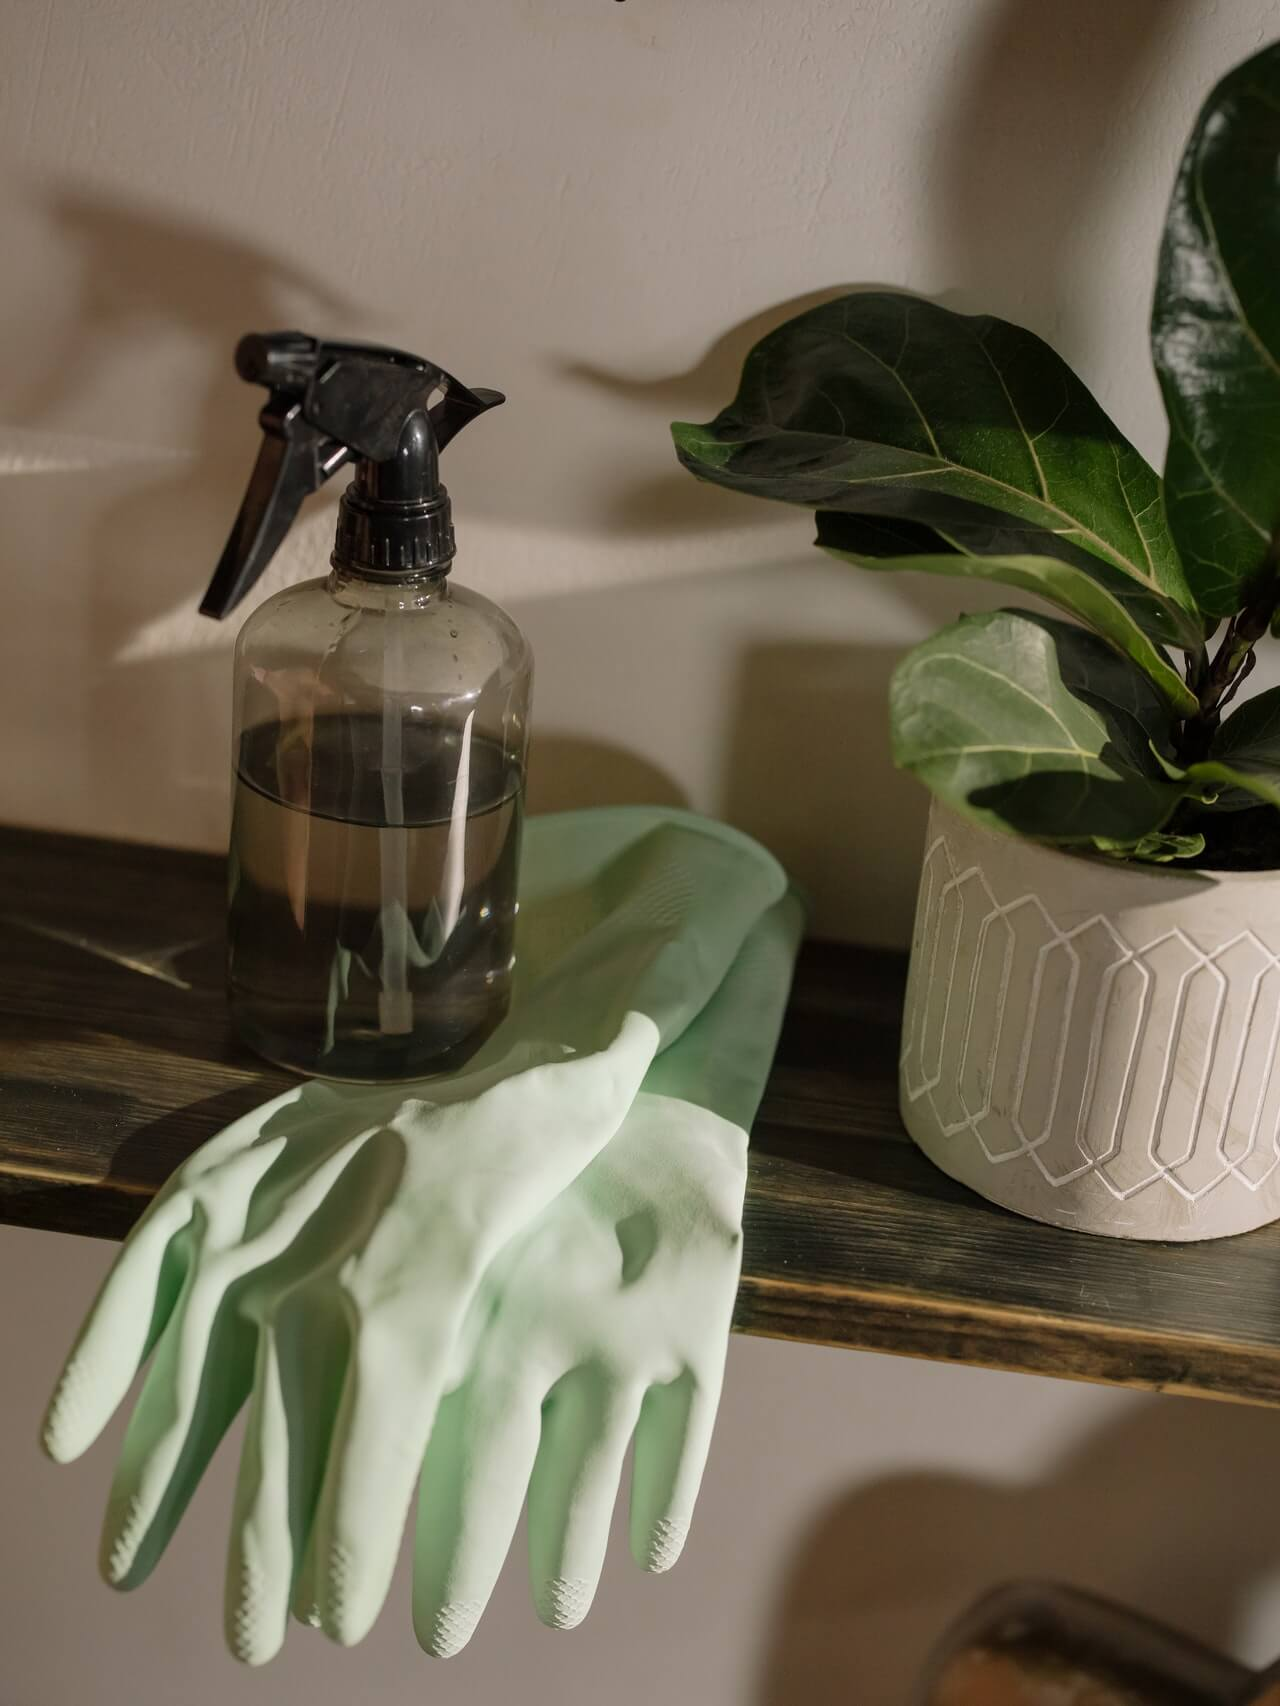 Preparing your Home for a Professional Cleaner